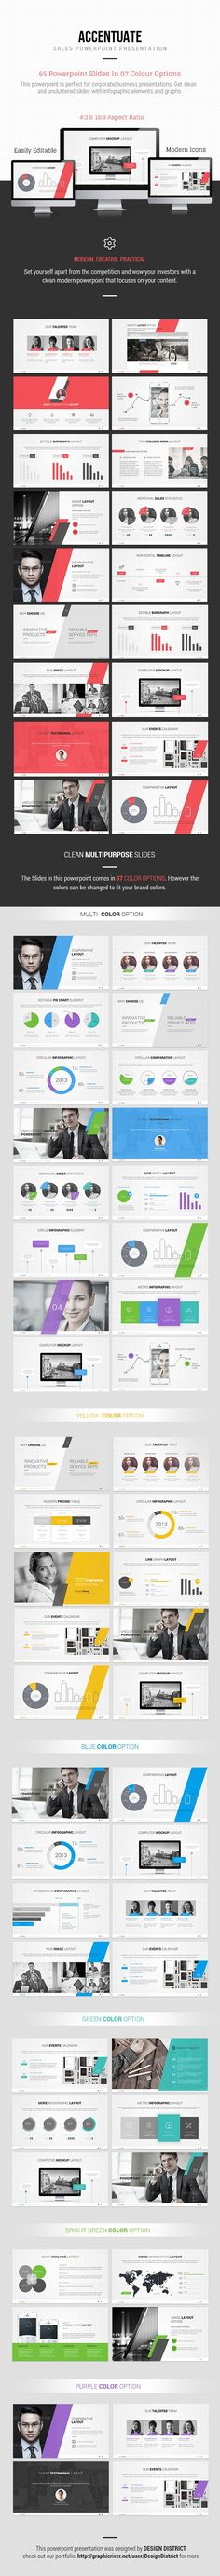 Small Business Presentation Business presentation, Powerpoint - powerpoint presentations template